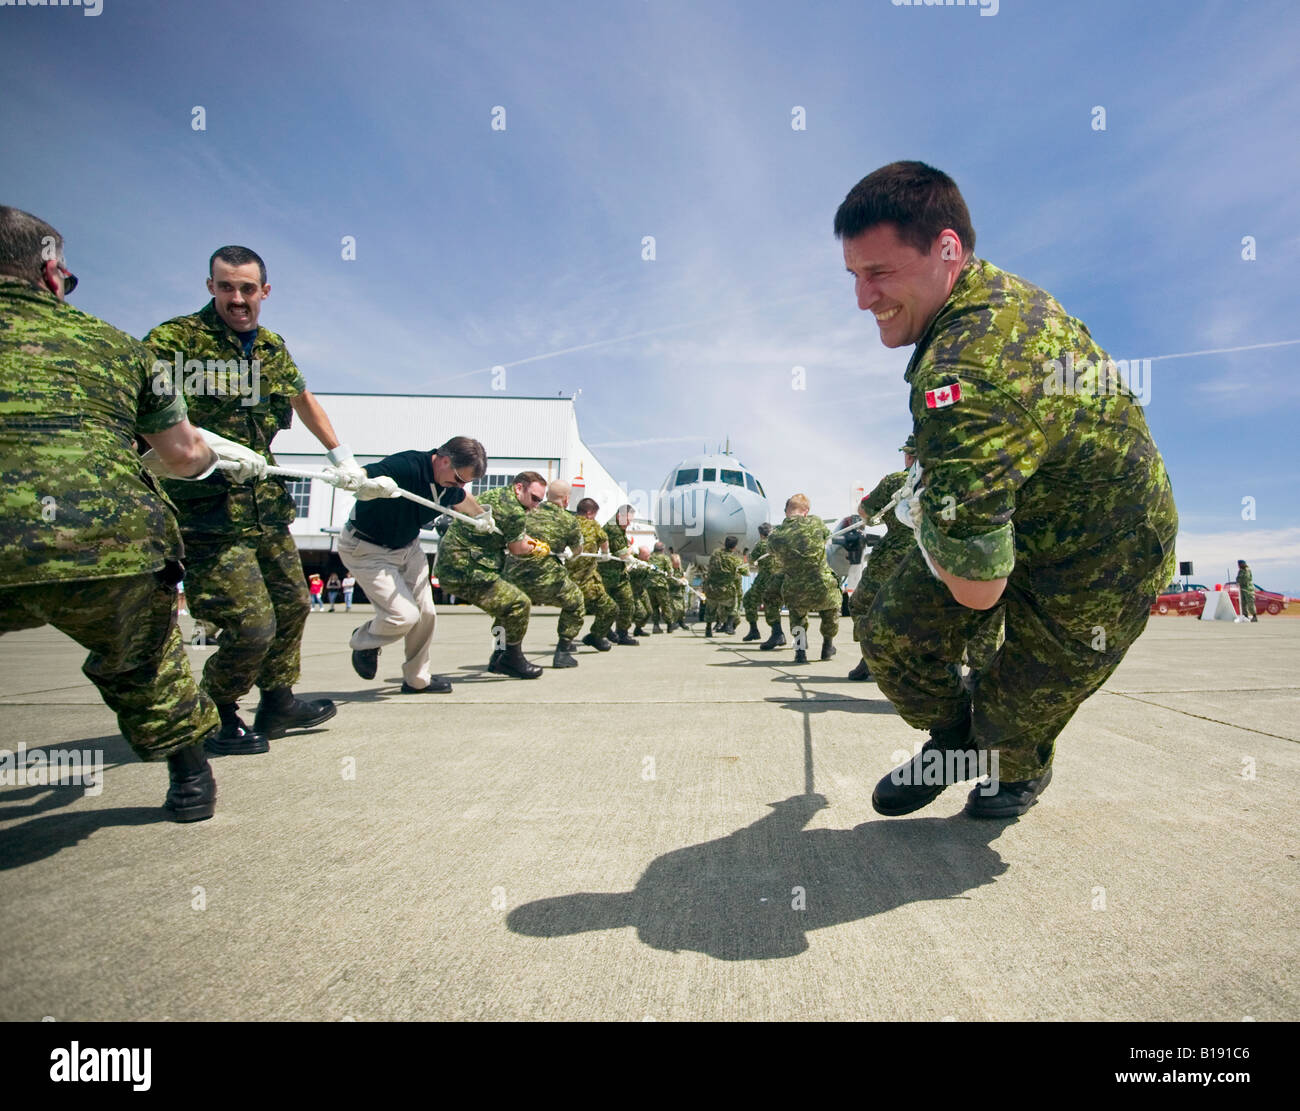 #19 Airman Maintenance Squadron pulls hard during the Aurora pull at Air Forces day, CFB Comox, Vancouver Island, - Stock Image